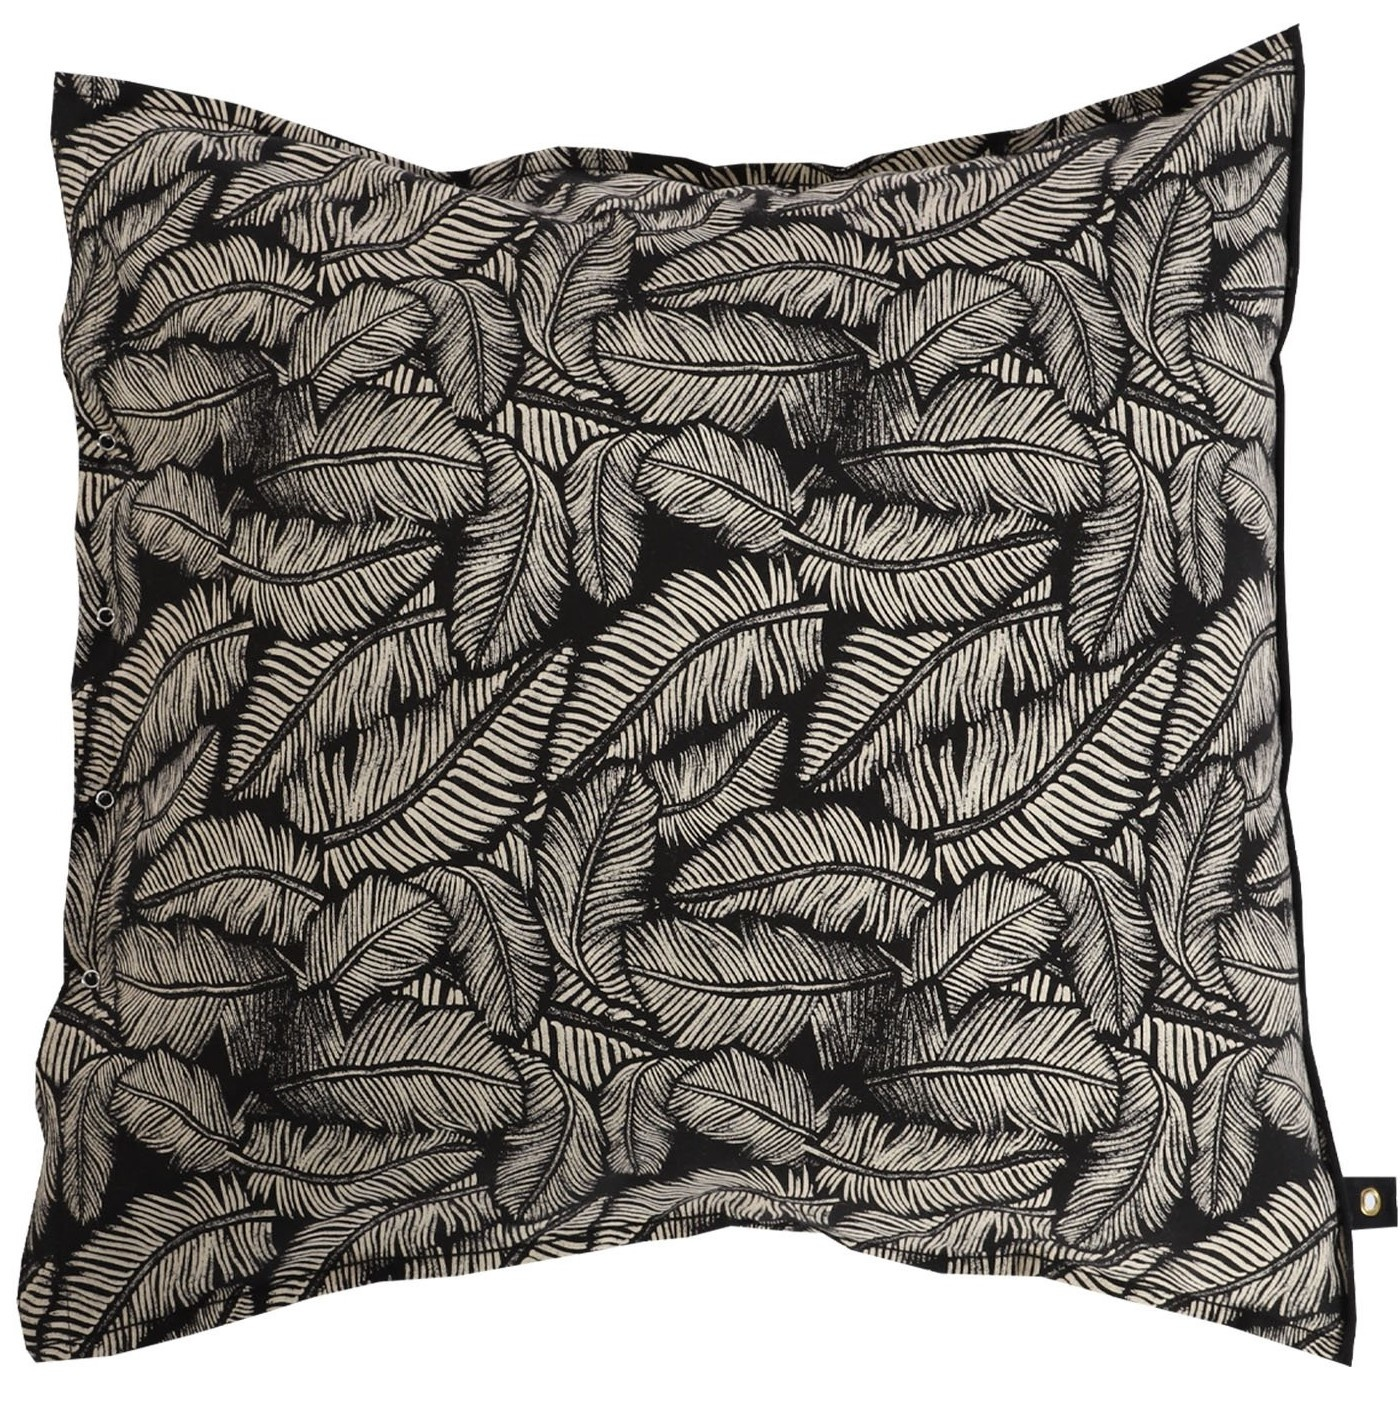 Kussenhoes leaf 65x65cm Black-1